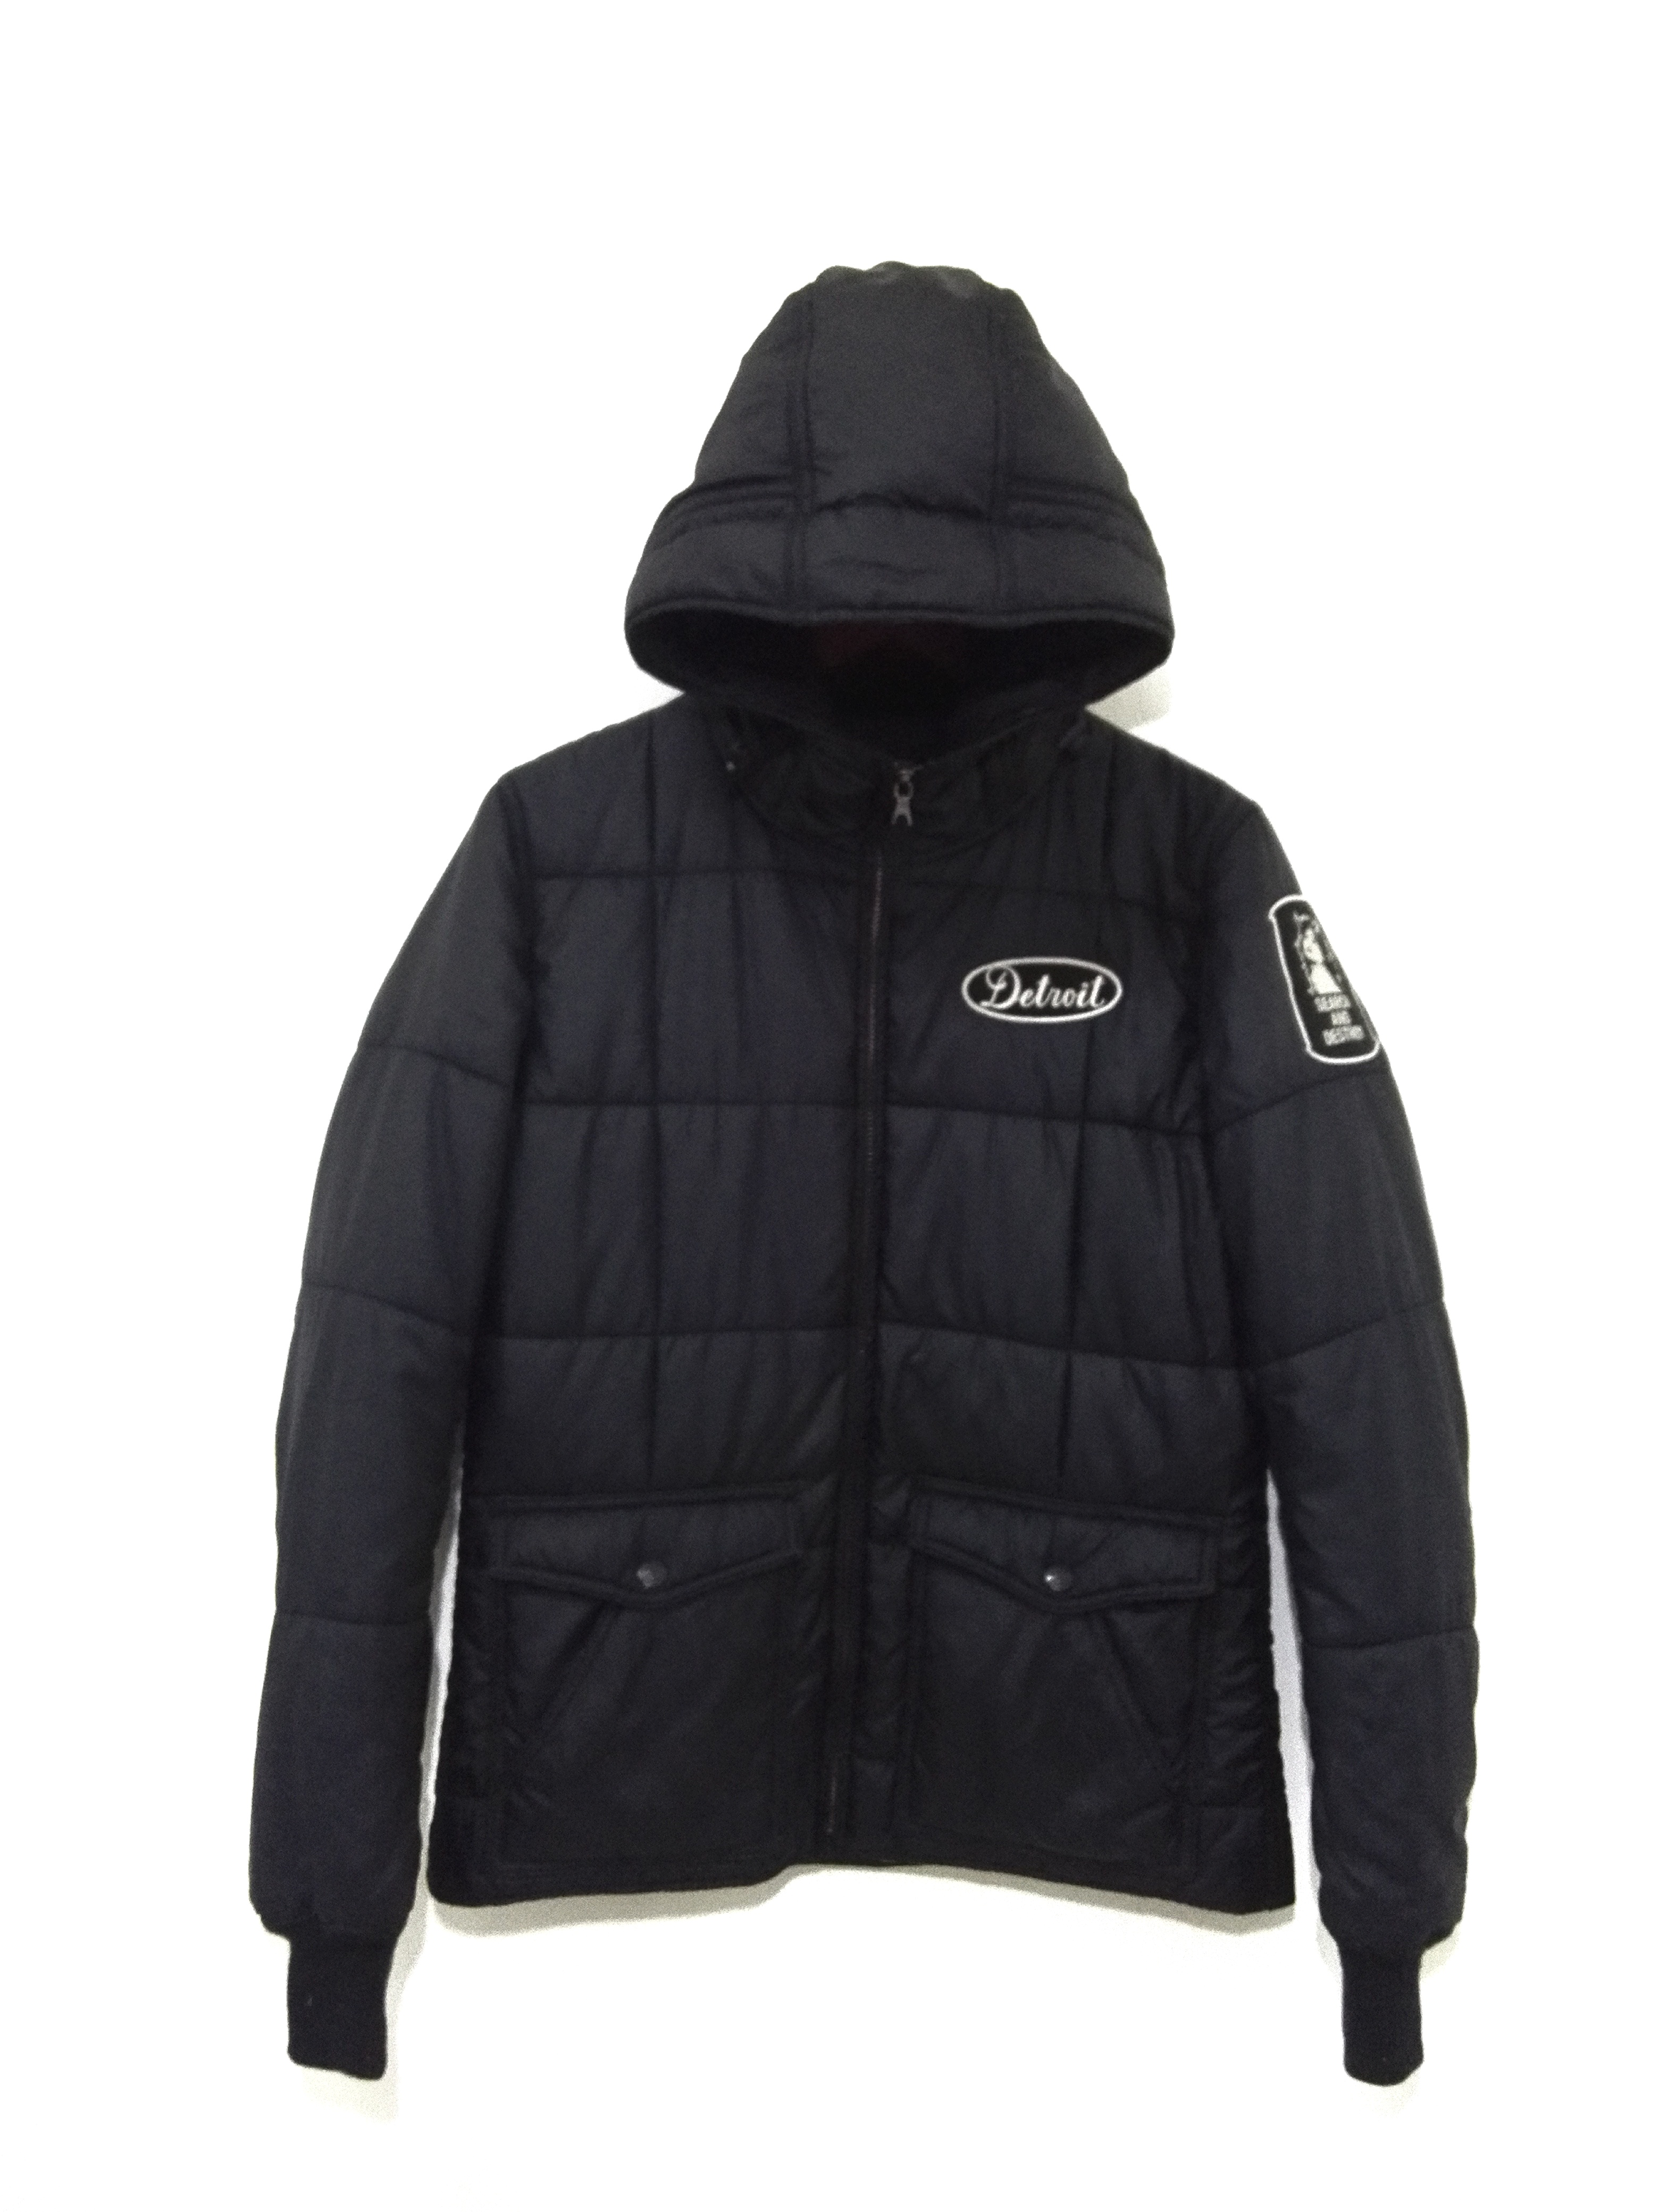 Hysteric Glamour Puffer Jacket Black Colour Design 13